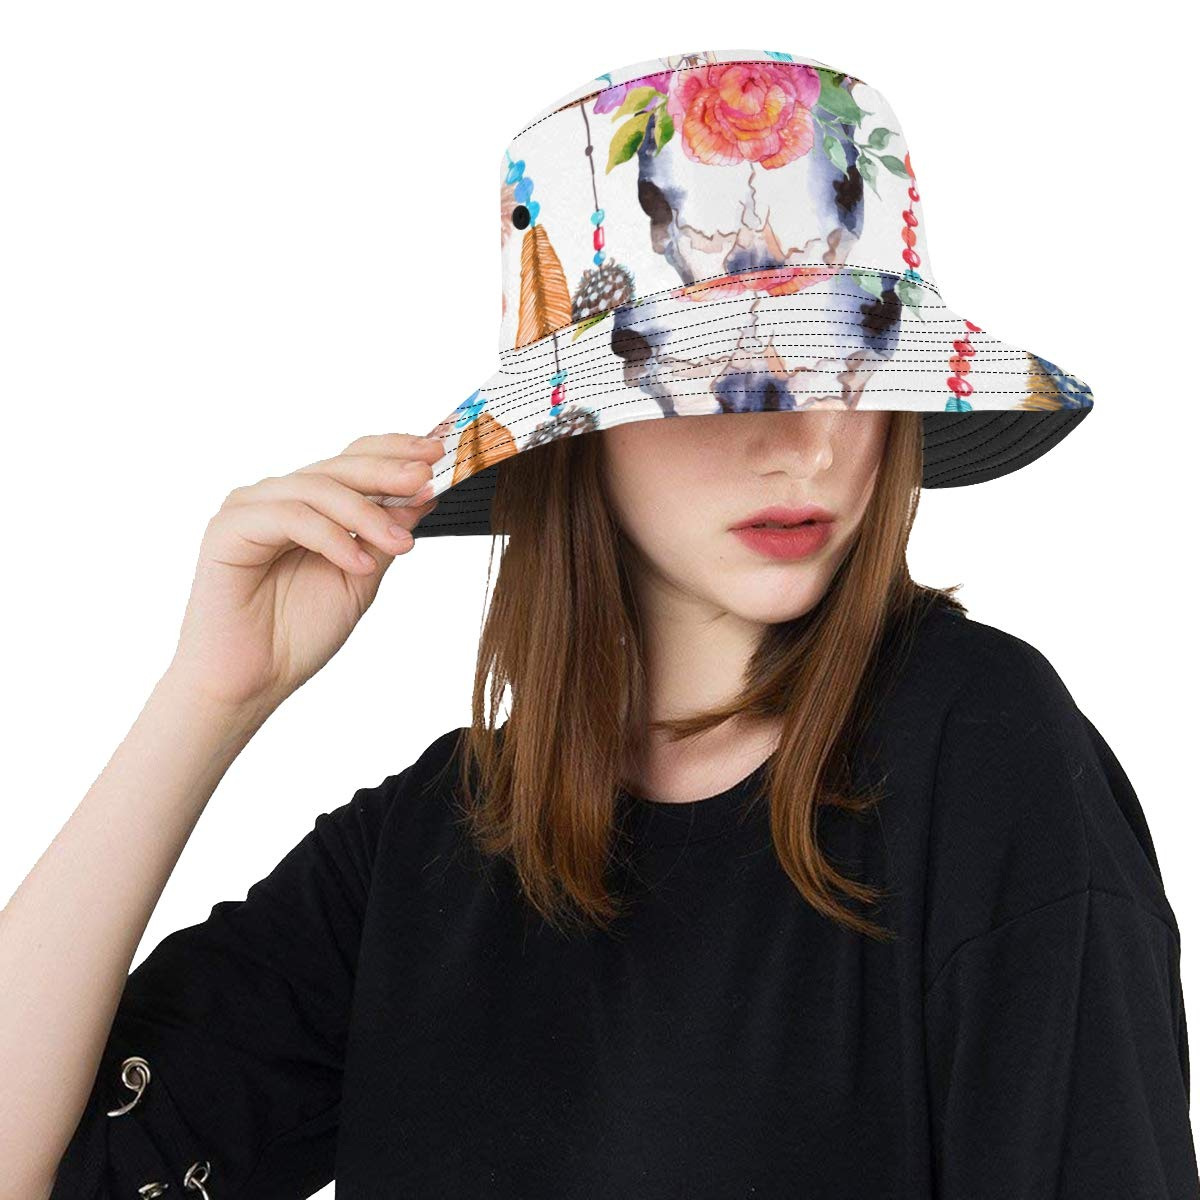 Teens Bull Head Skull with Flowers New Summer Unisex Cotton Fashion Fishing Sun Bucket Hats for Kid Women and Men with Customize Top Packable Fisherman Cap for Outdoor Travel